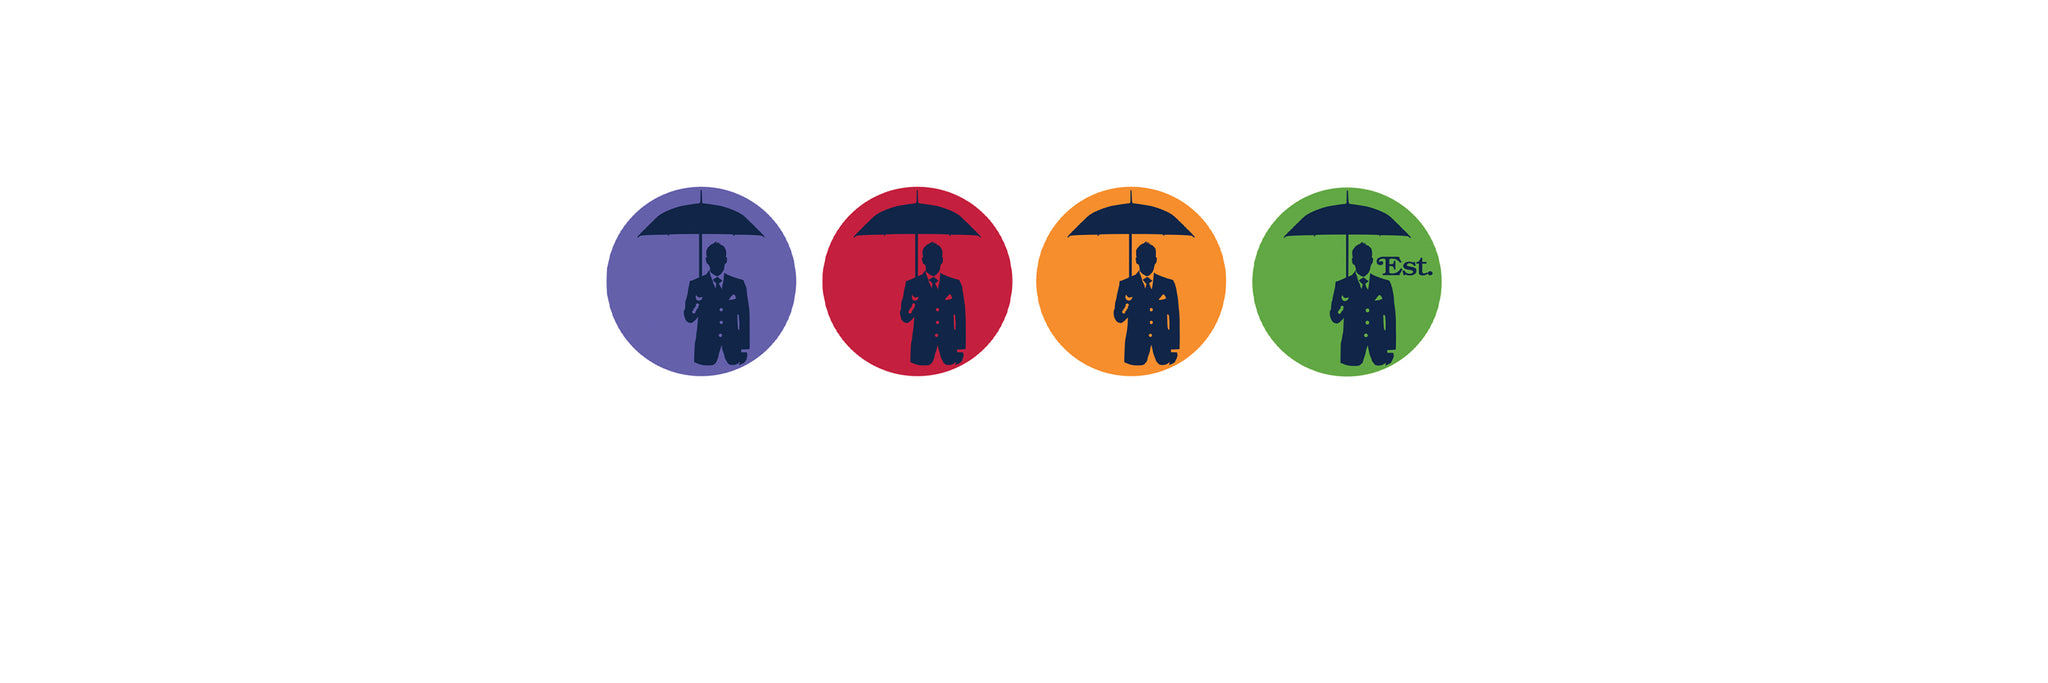 4 circles in different colors. Logo of a man holding umbrella inside.